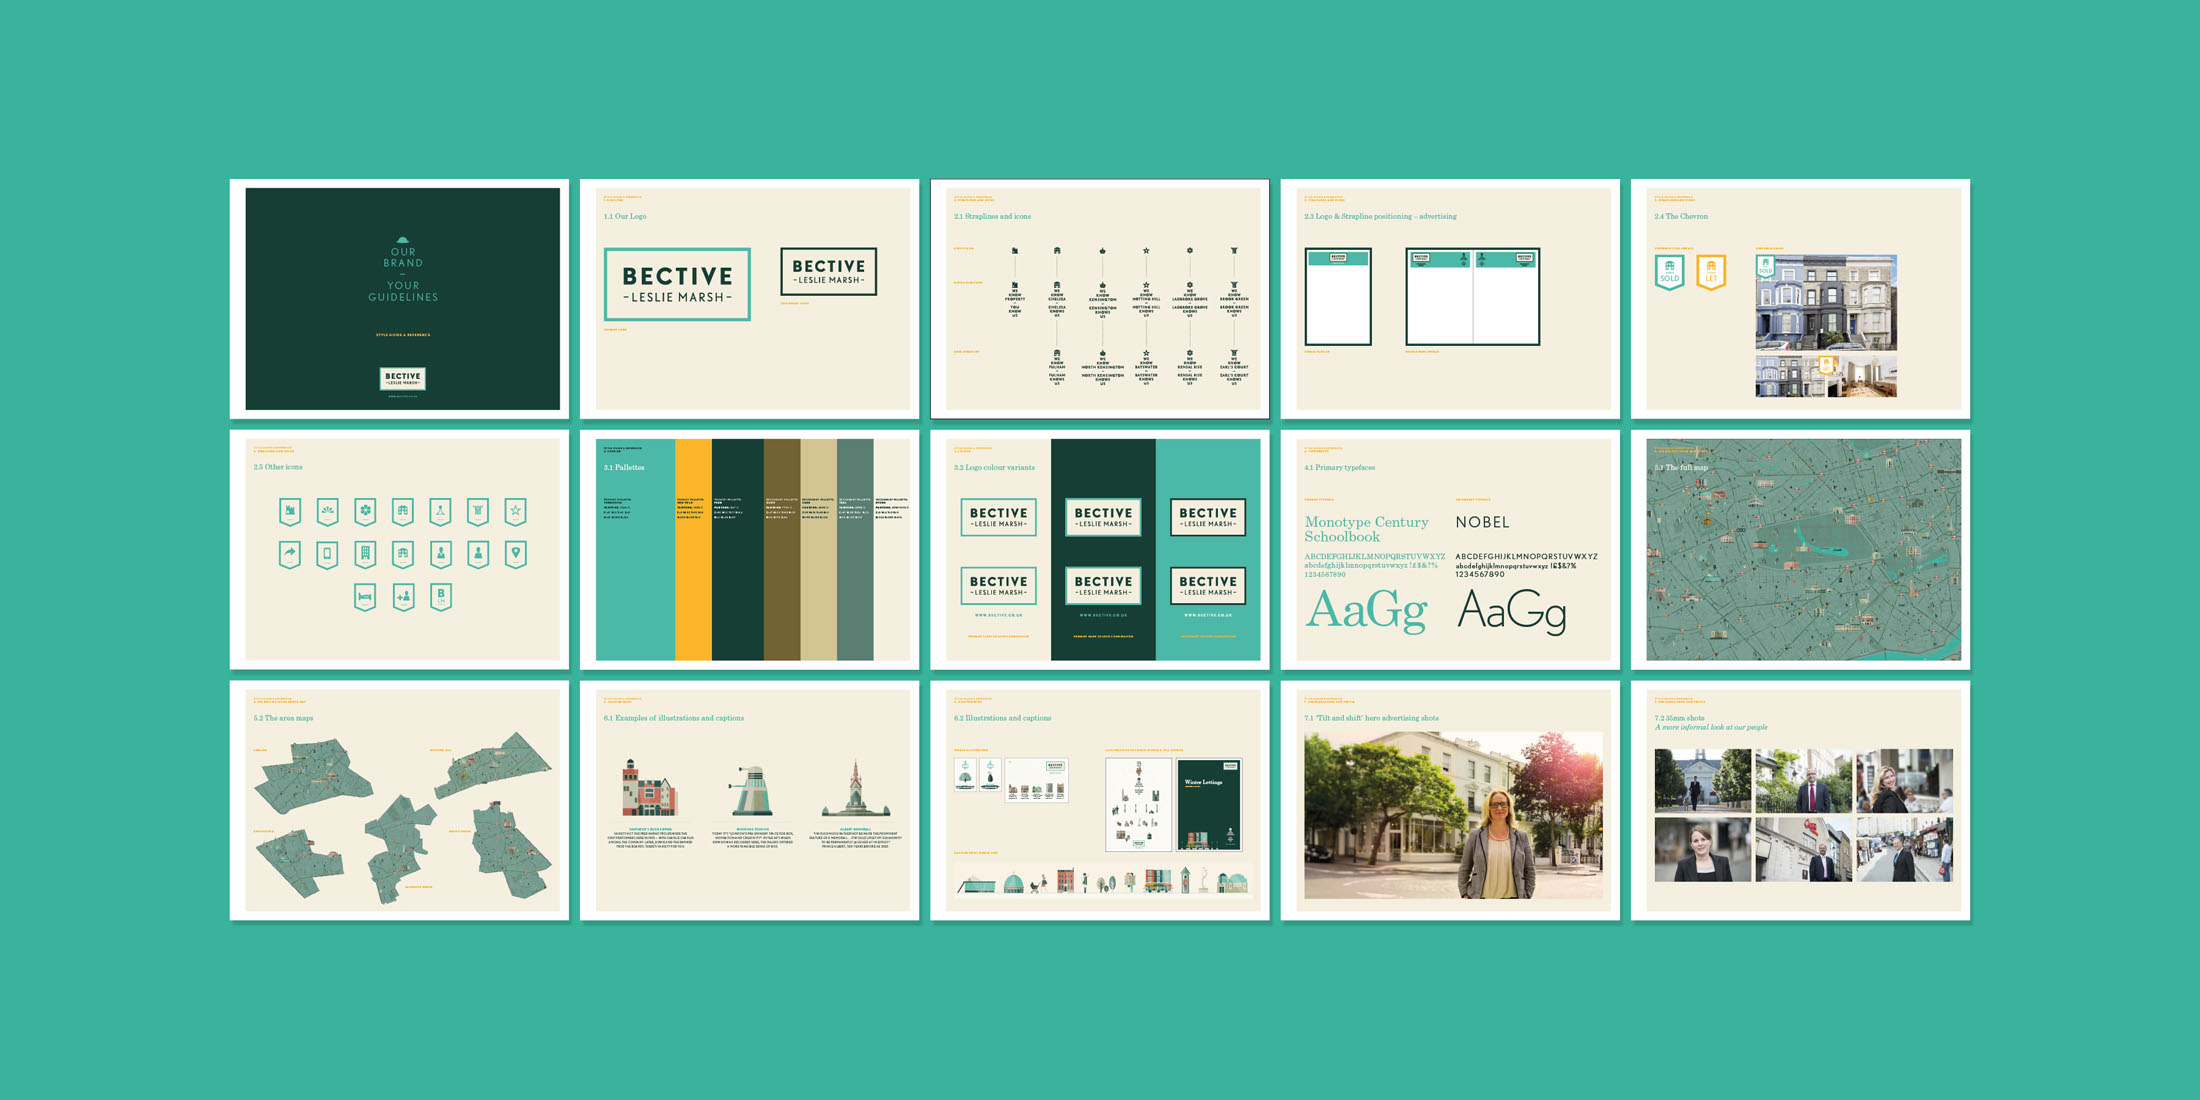 Bective brand guidelines